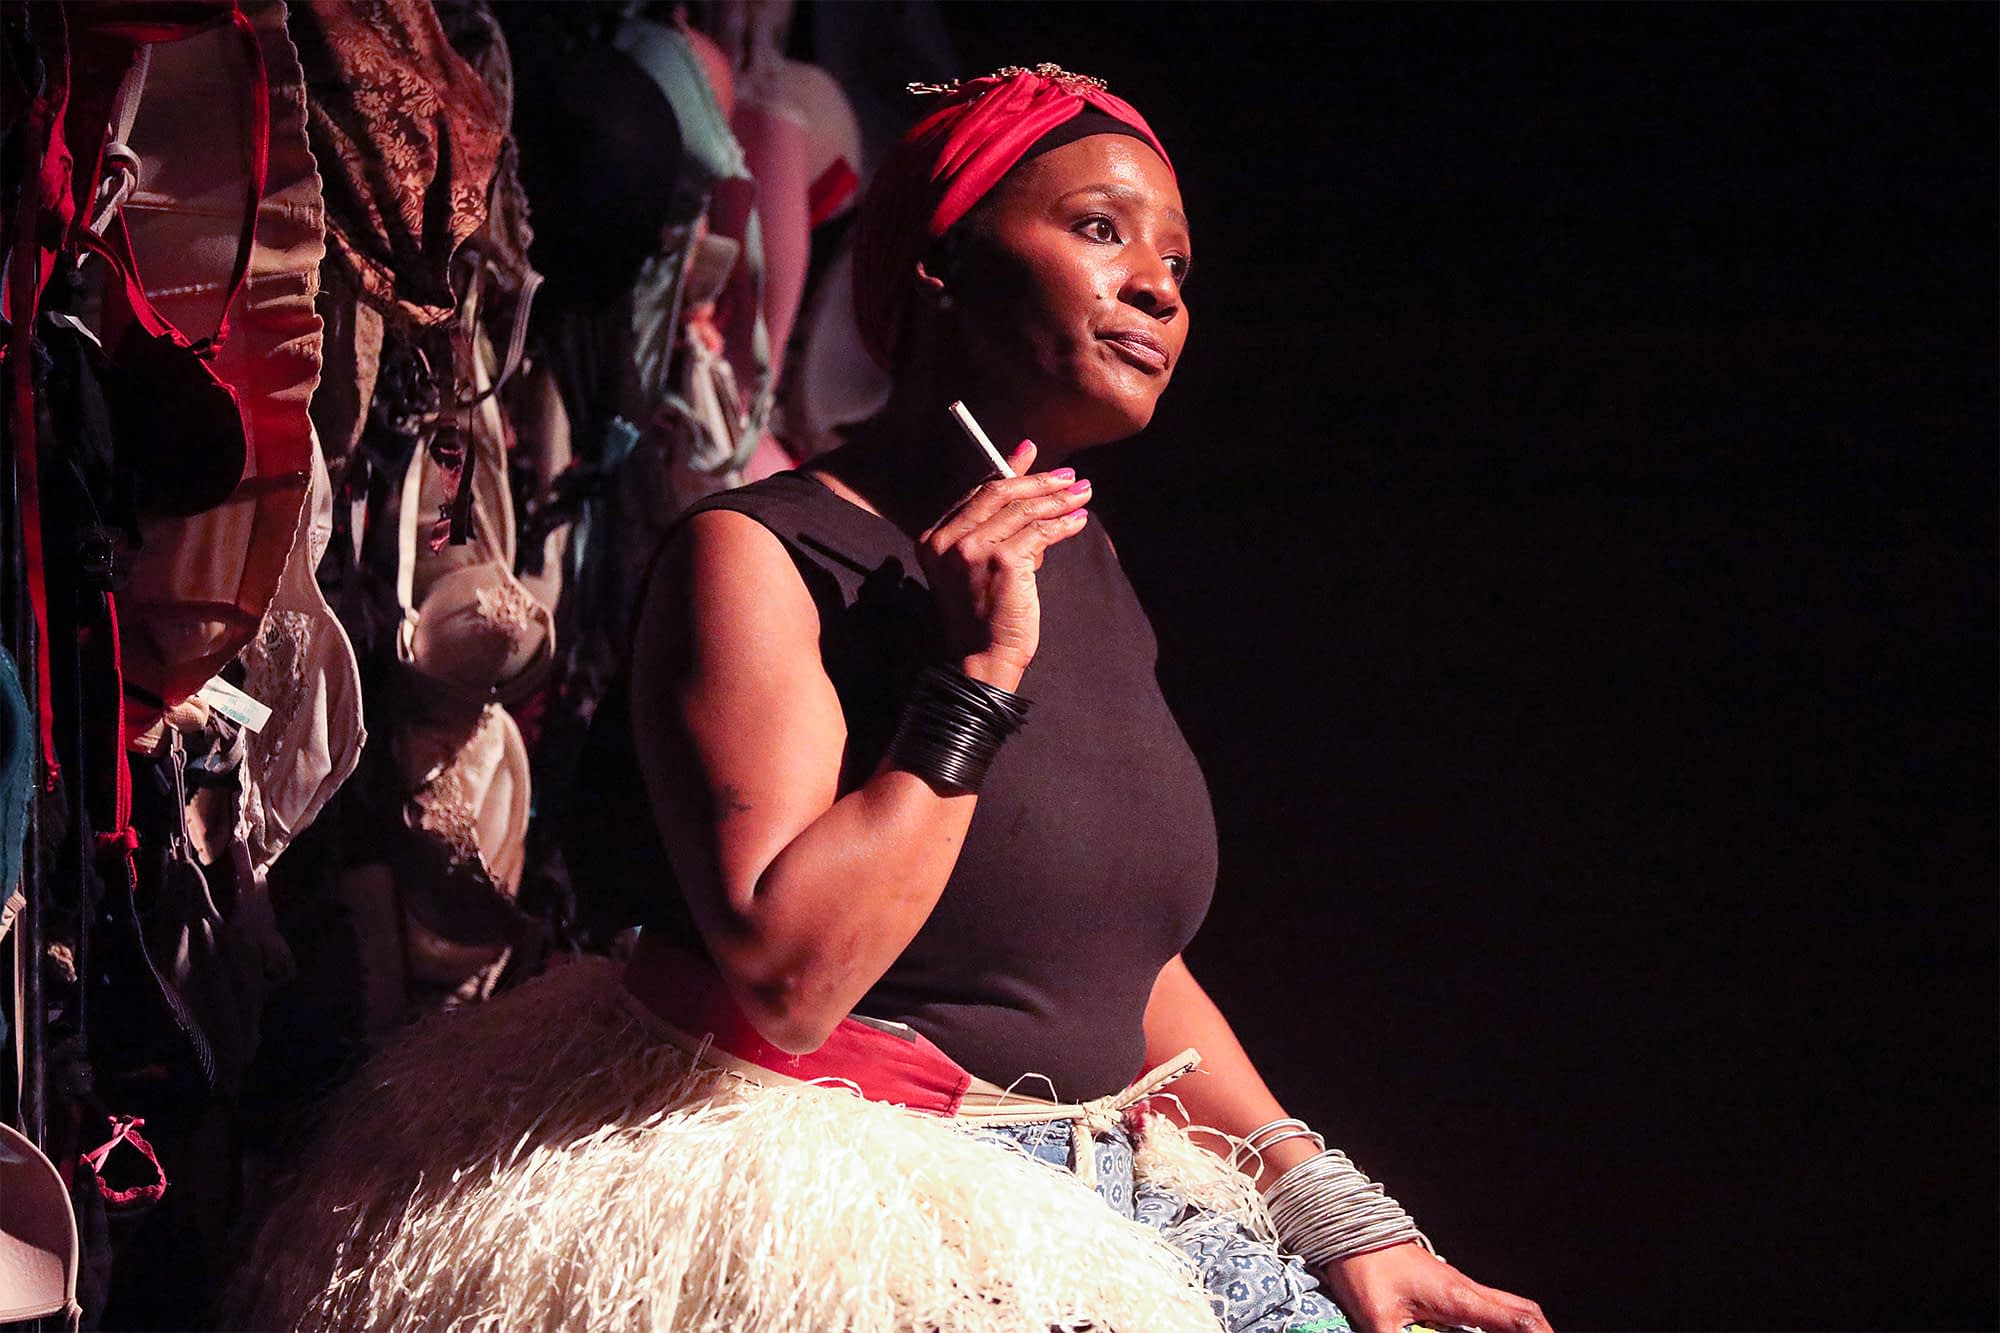 Napo Masheane performs her My Vagina Was Not Buried With Him directed by directed by Clive Mathibe